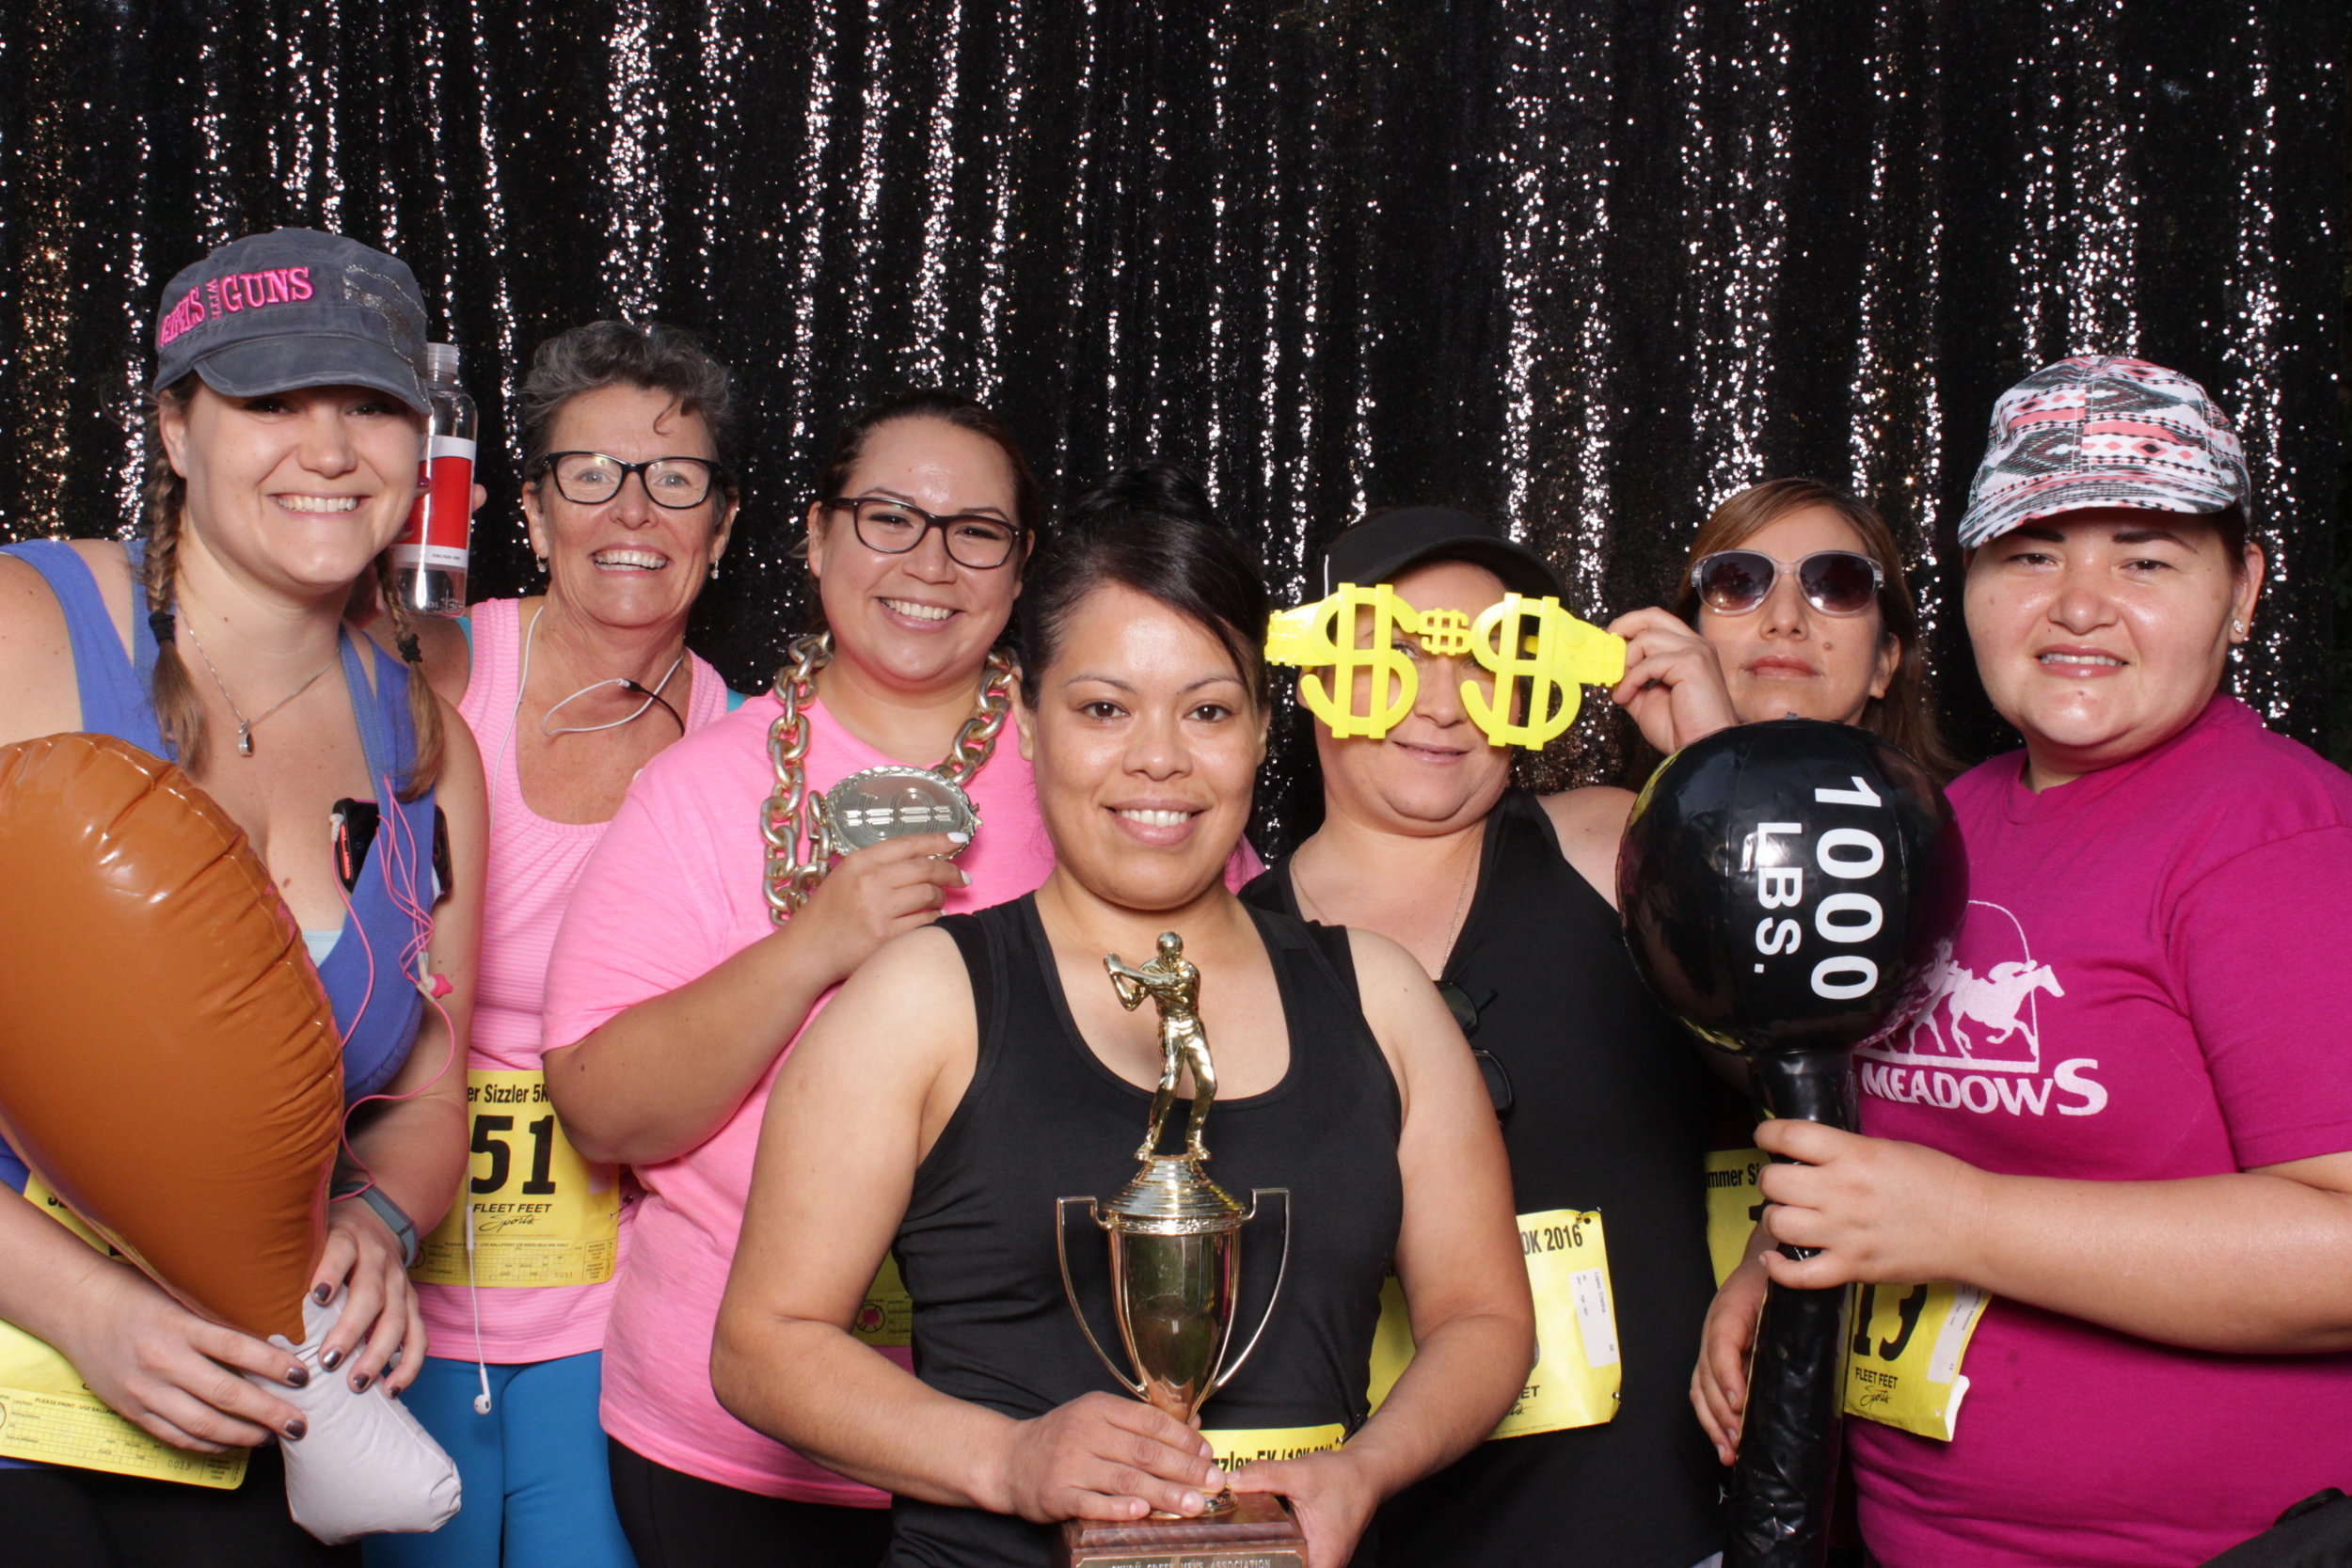 photo-booths-in-chico-rental-run-corporate-party-trophy